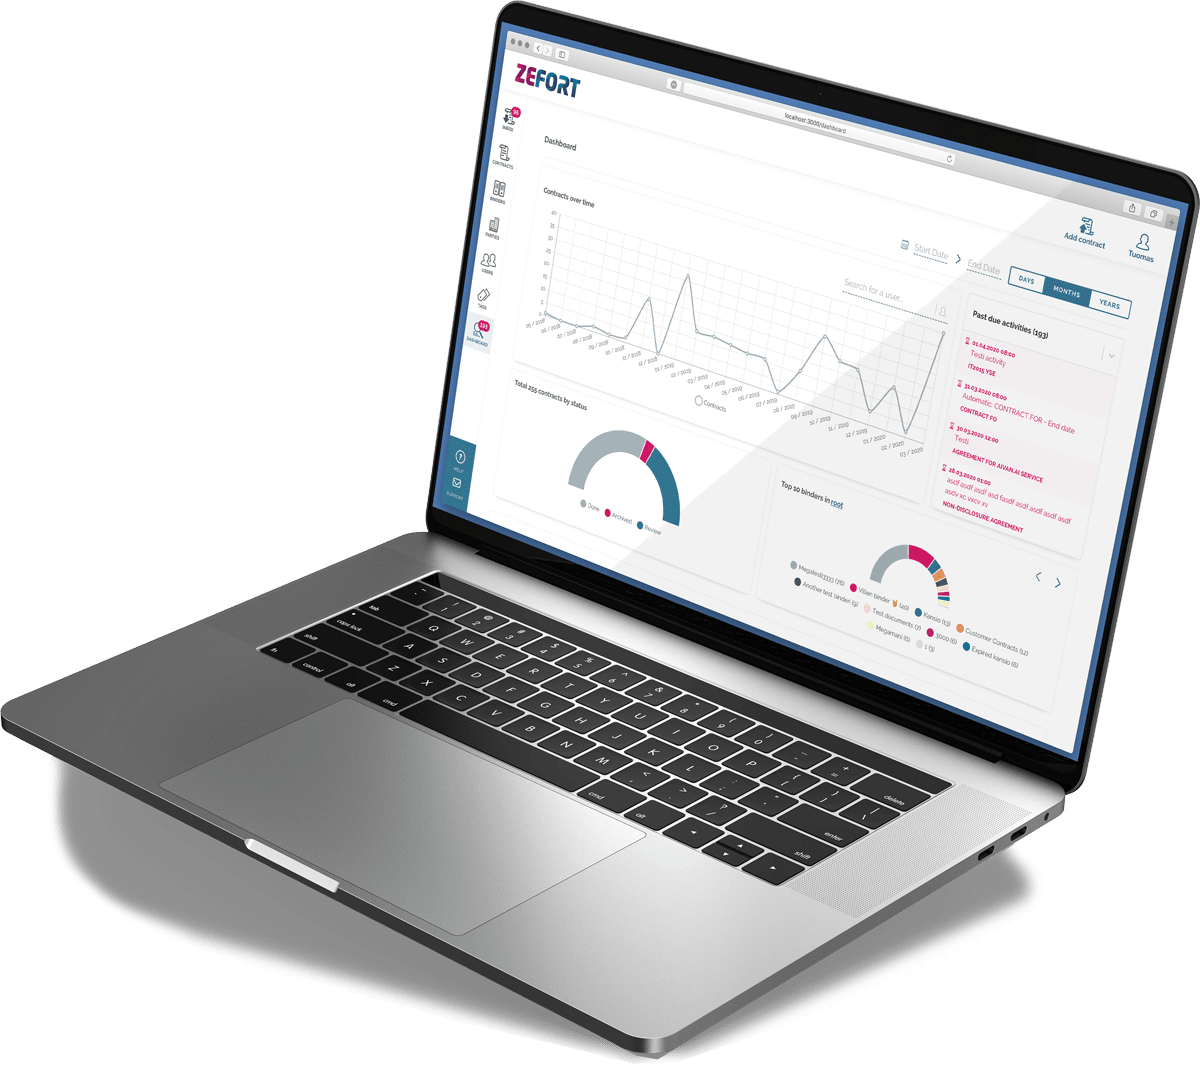 zefort-dashboard-laptop